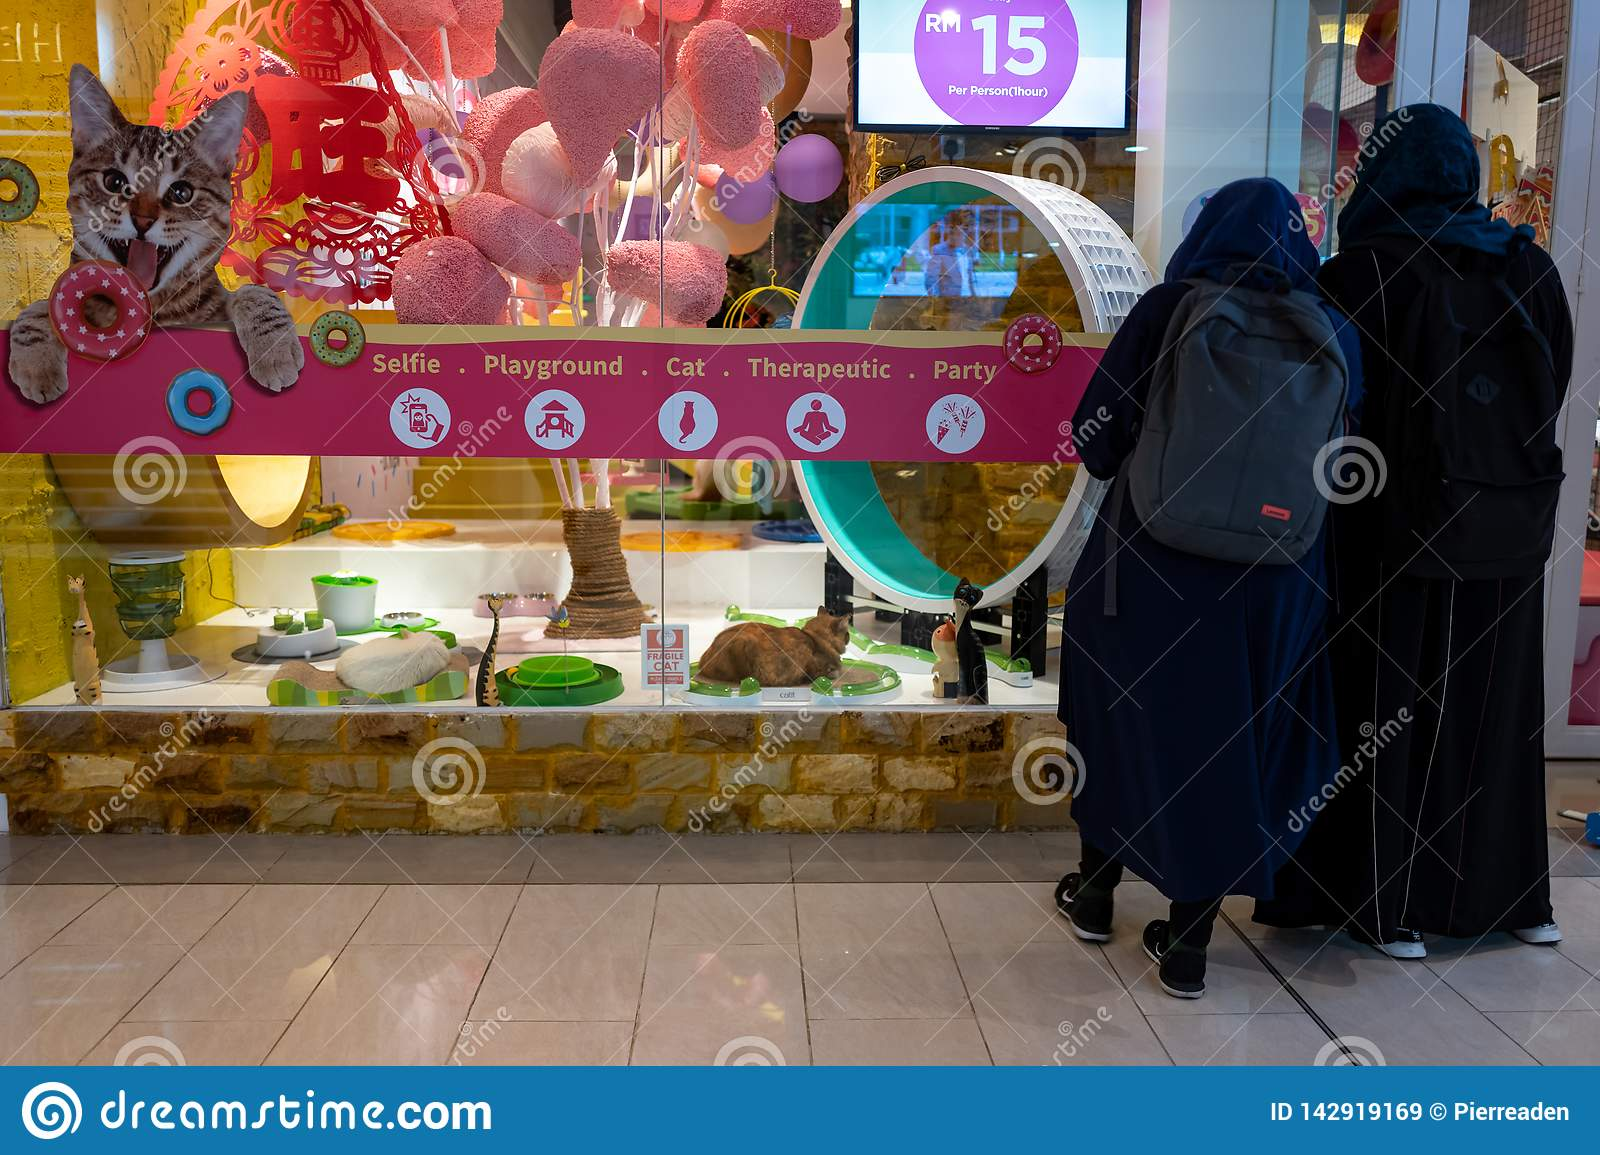 Kuala Lumpur Malaysia February 27 2019 The Cat Playground At Sunway Putra Mall In Kuala Lumpur Editorial Stock Image Image Of Therapy Business 142919169